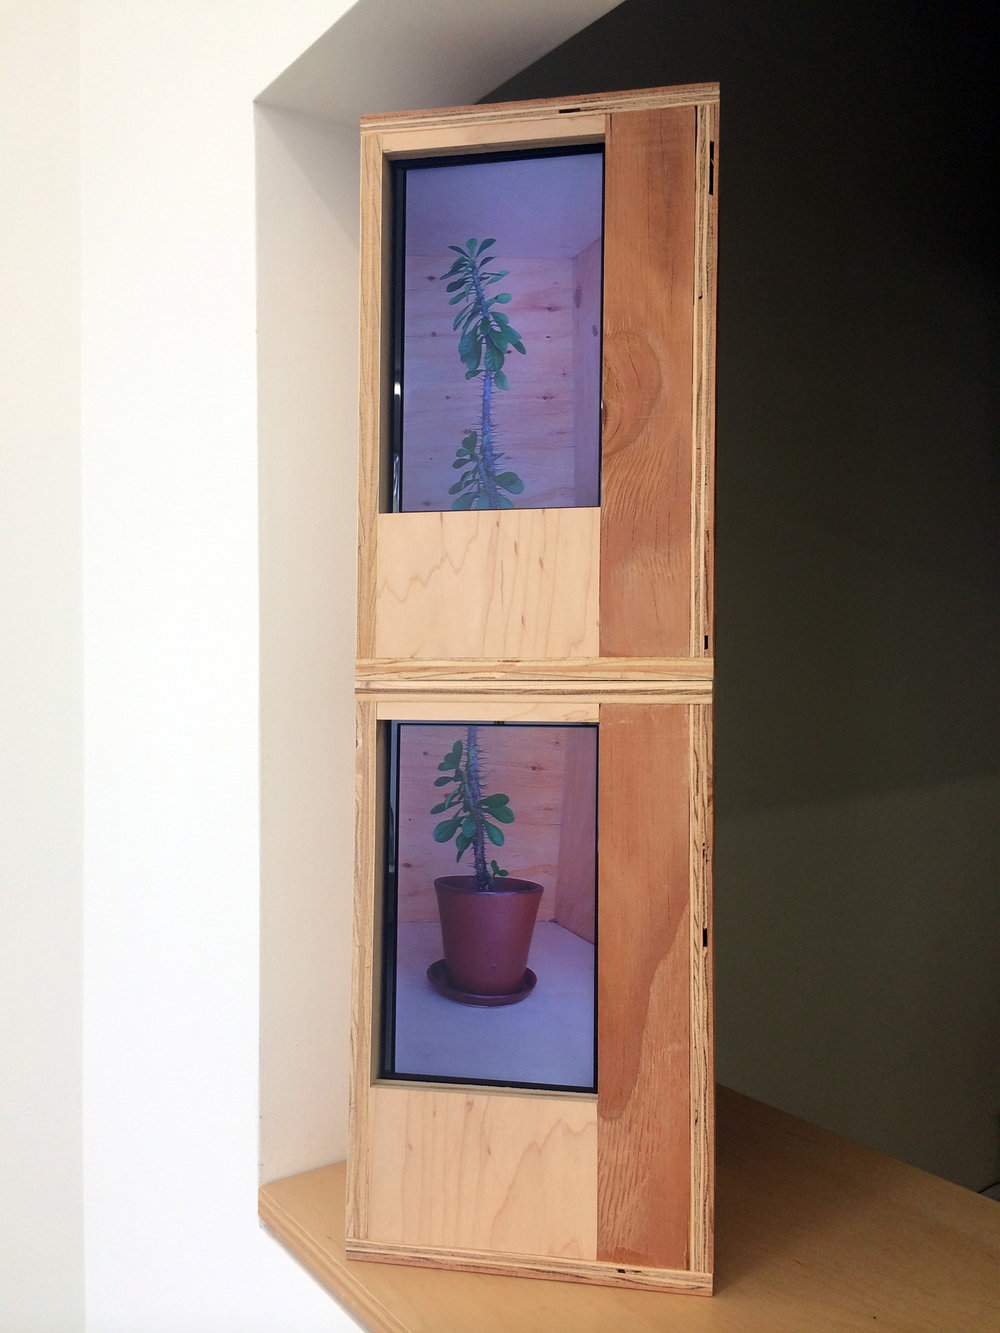 "JOSHUA PIEPER   Video Cactus , 2014, LCD monitors, dvds and wood housing, 25.5"" x 6.25"" x 7.75"""